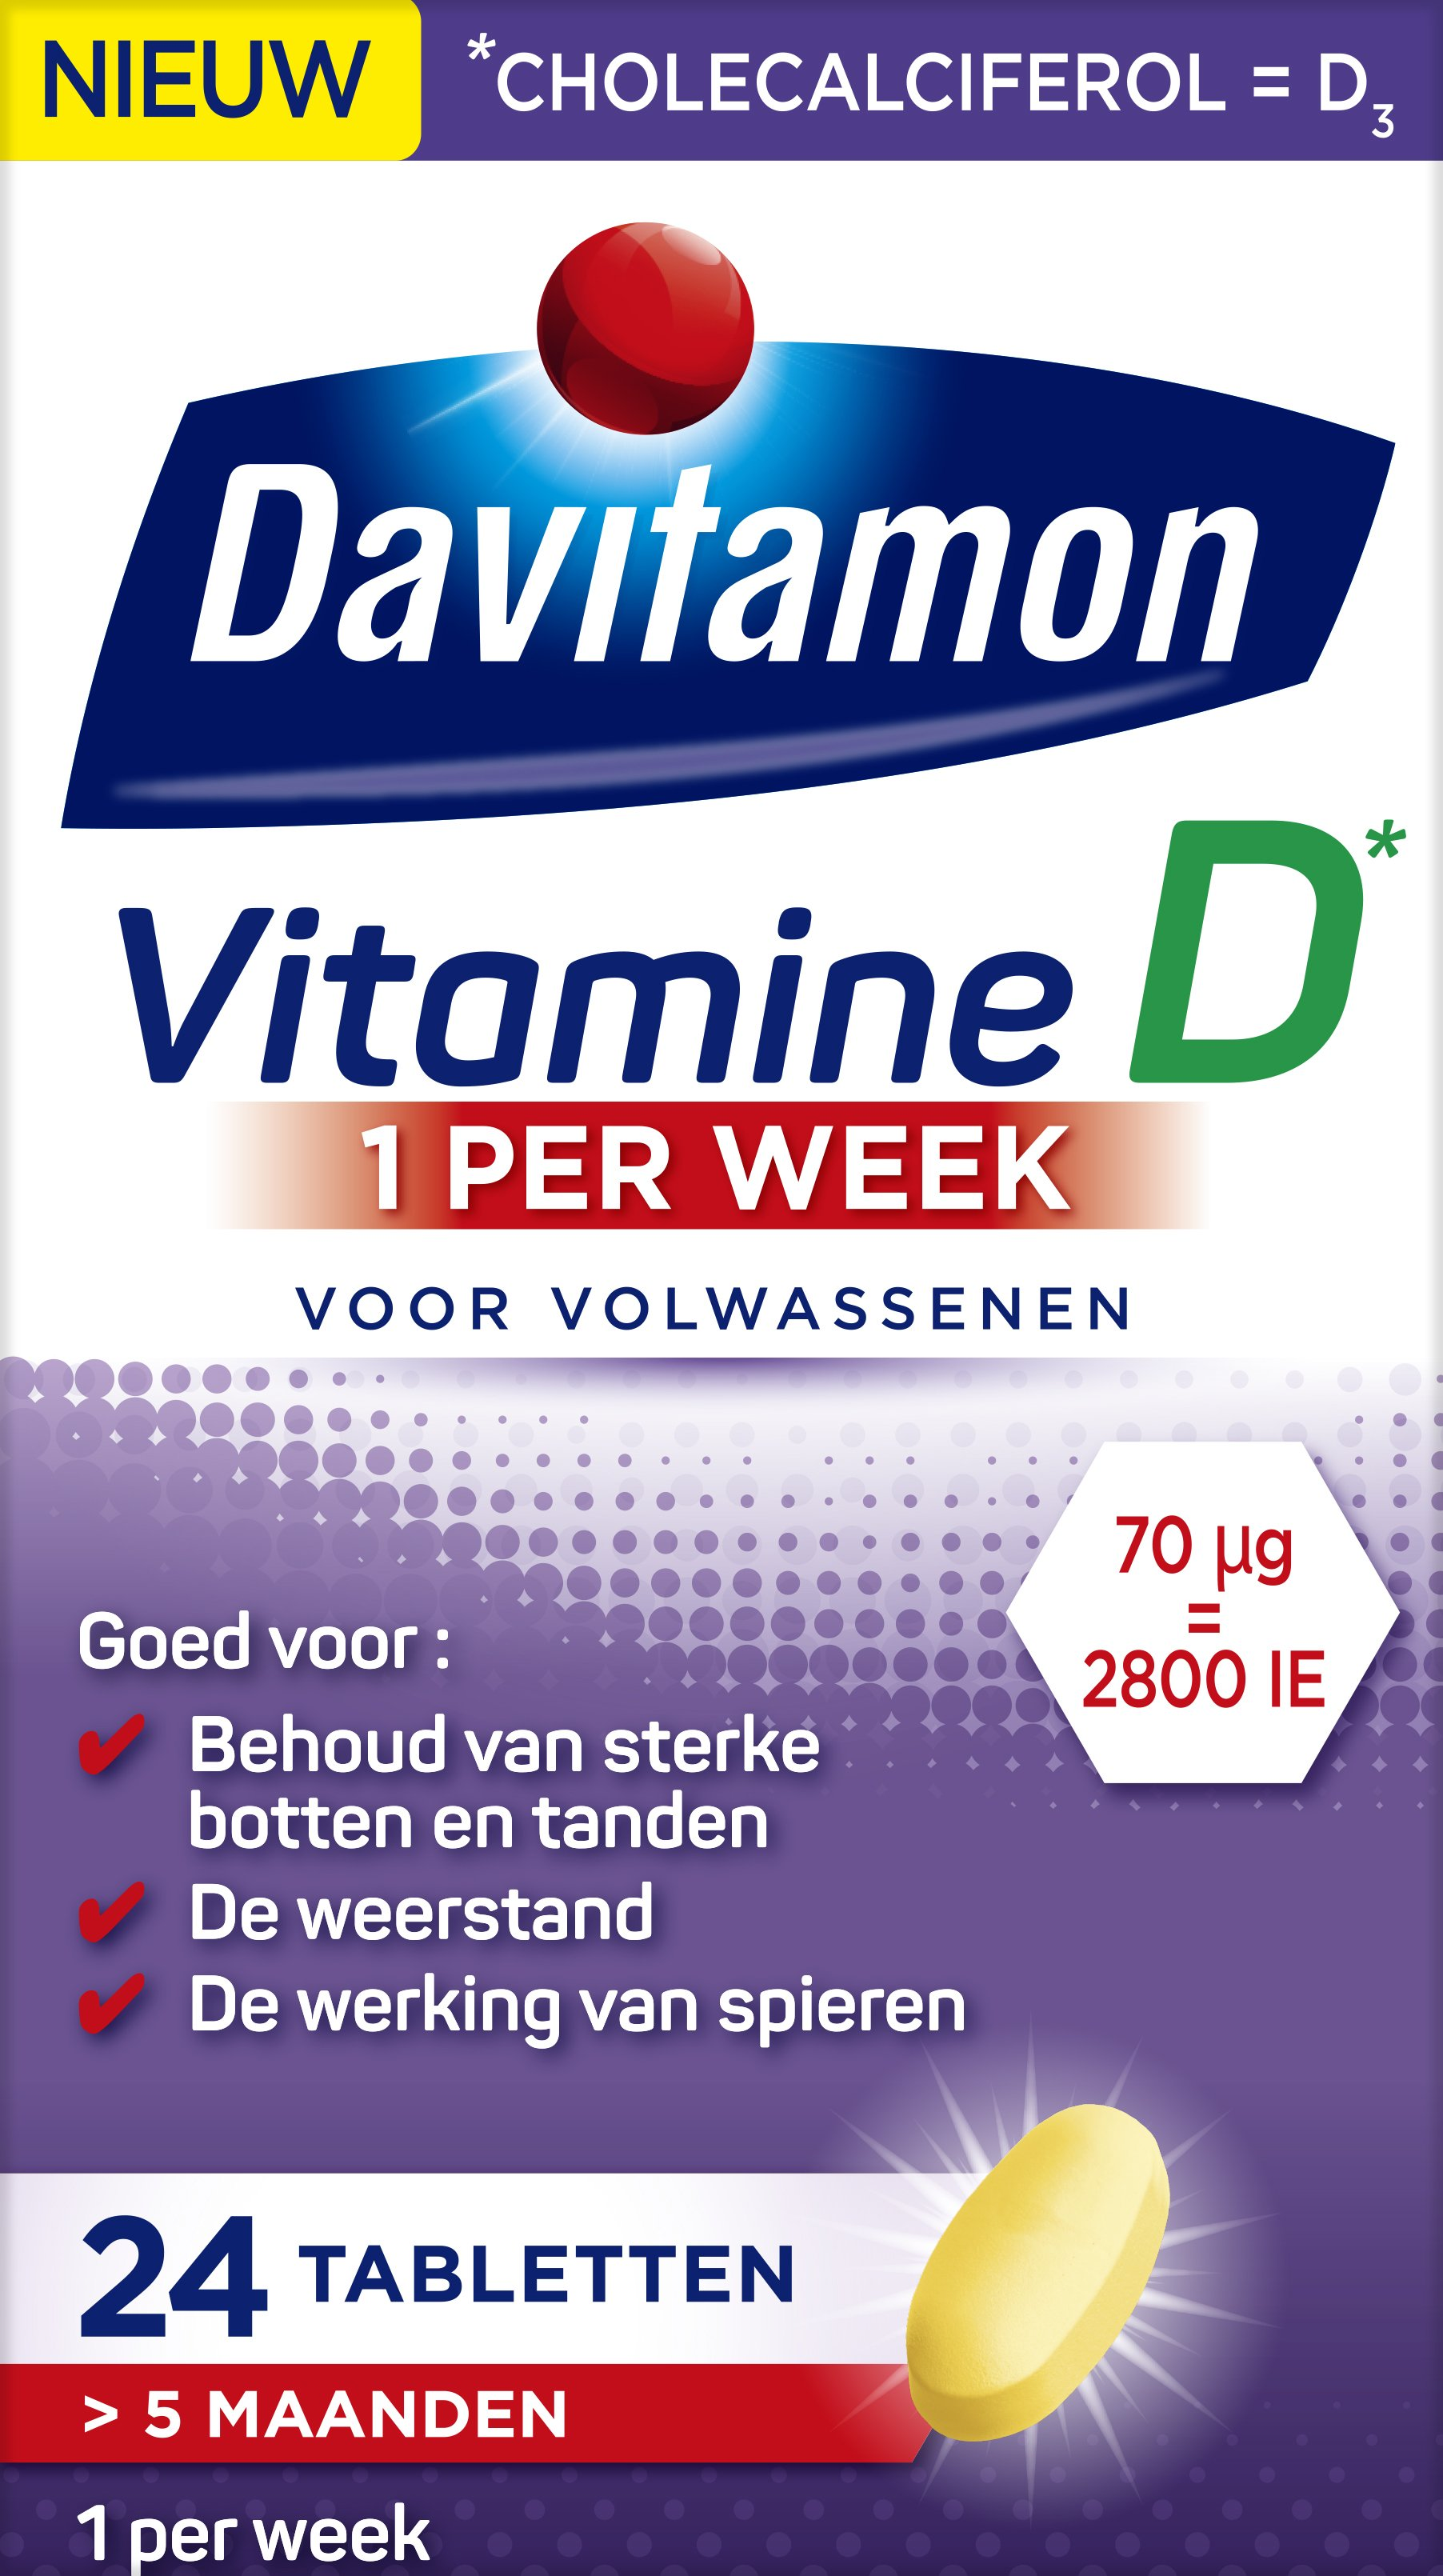 Davitamon Vitamine D week tabletten verpakking